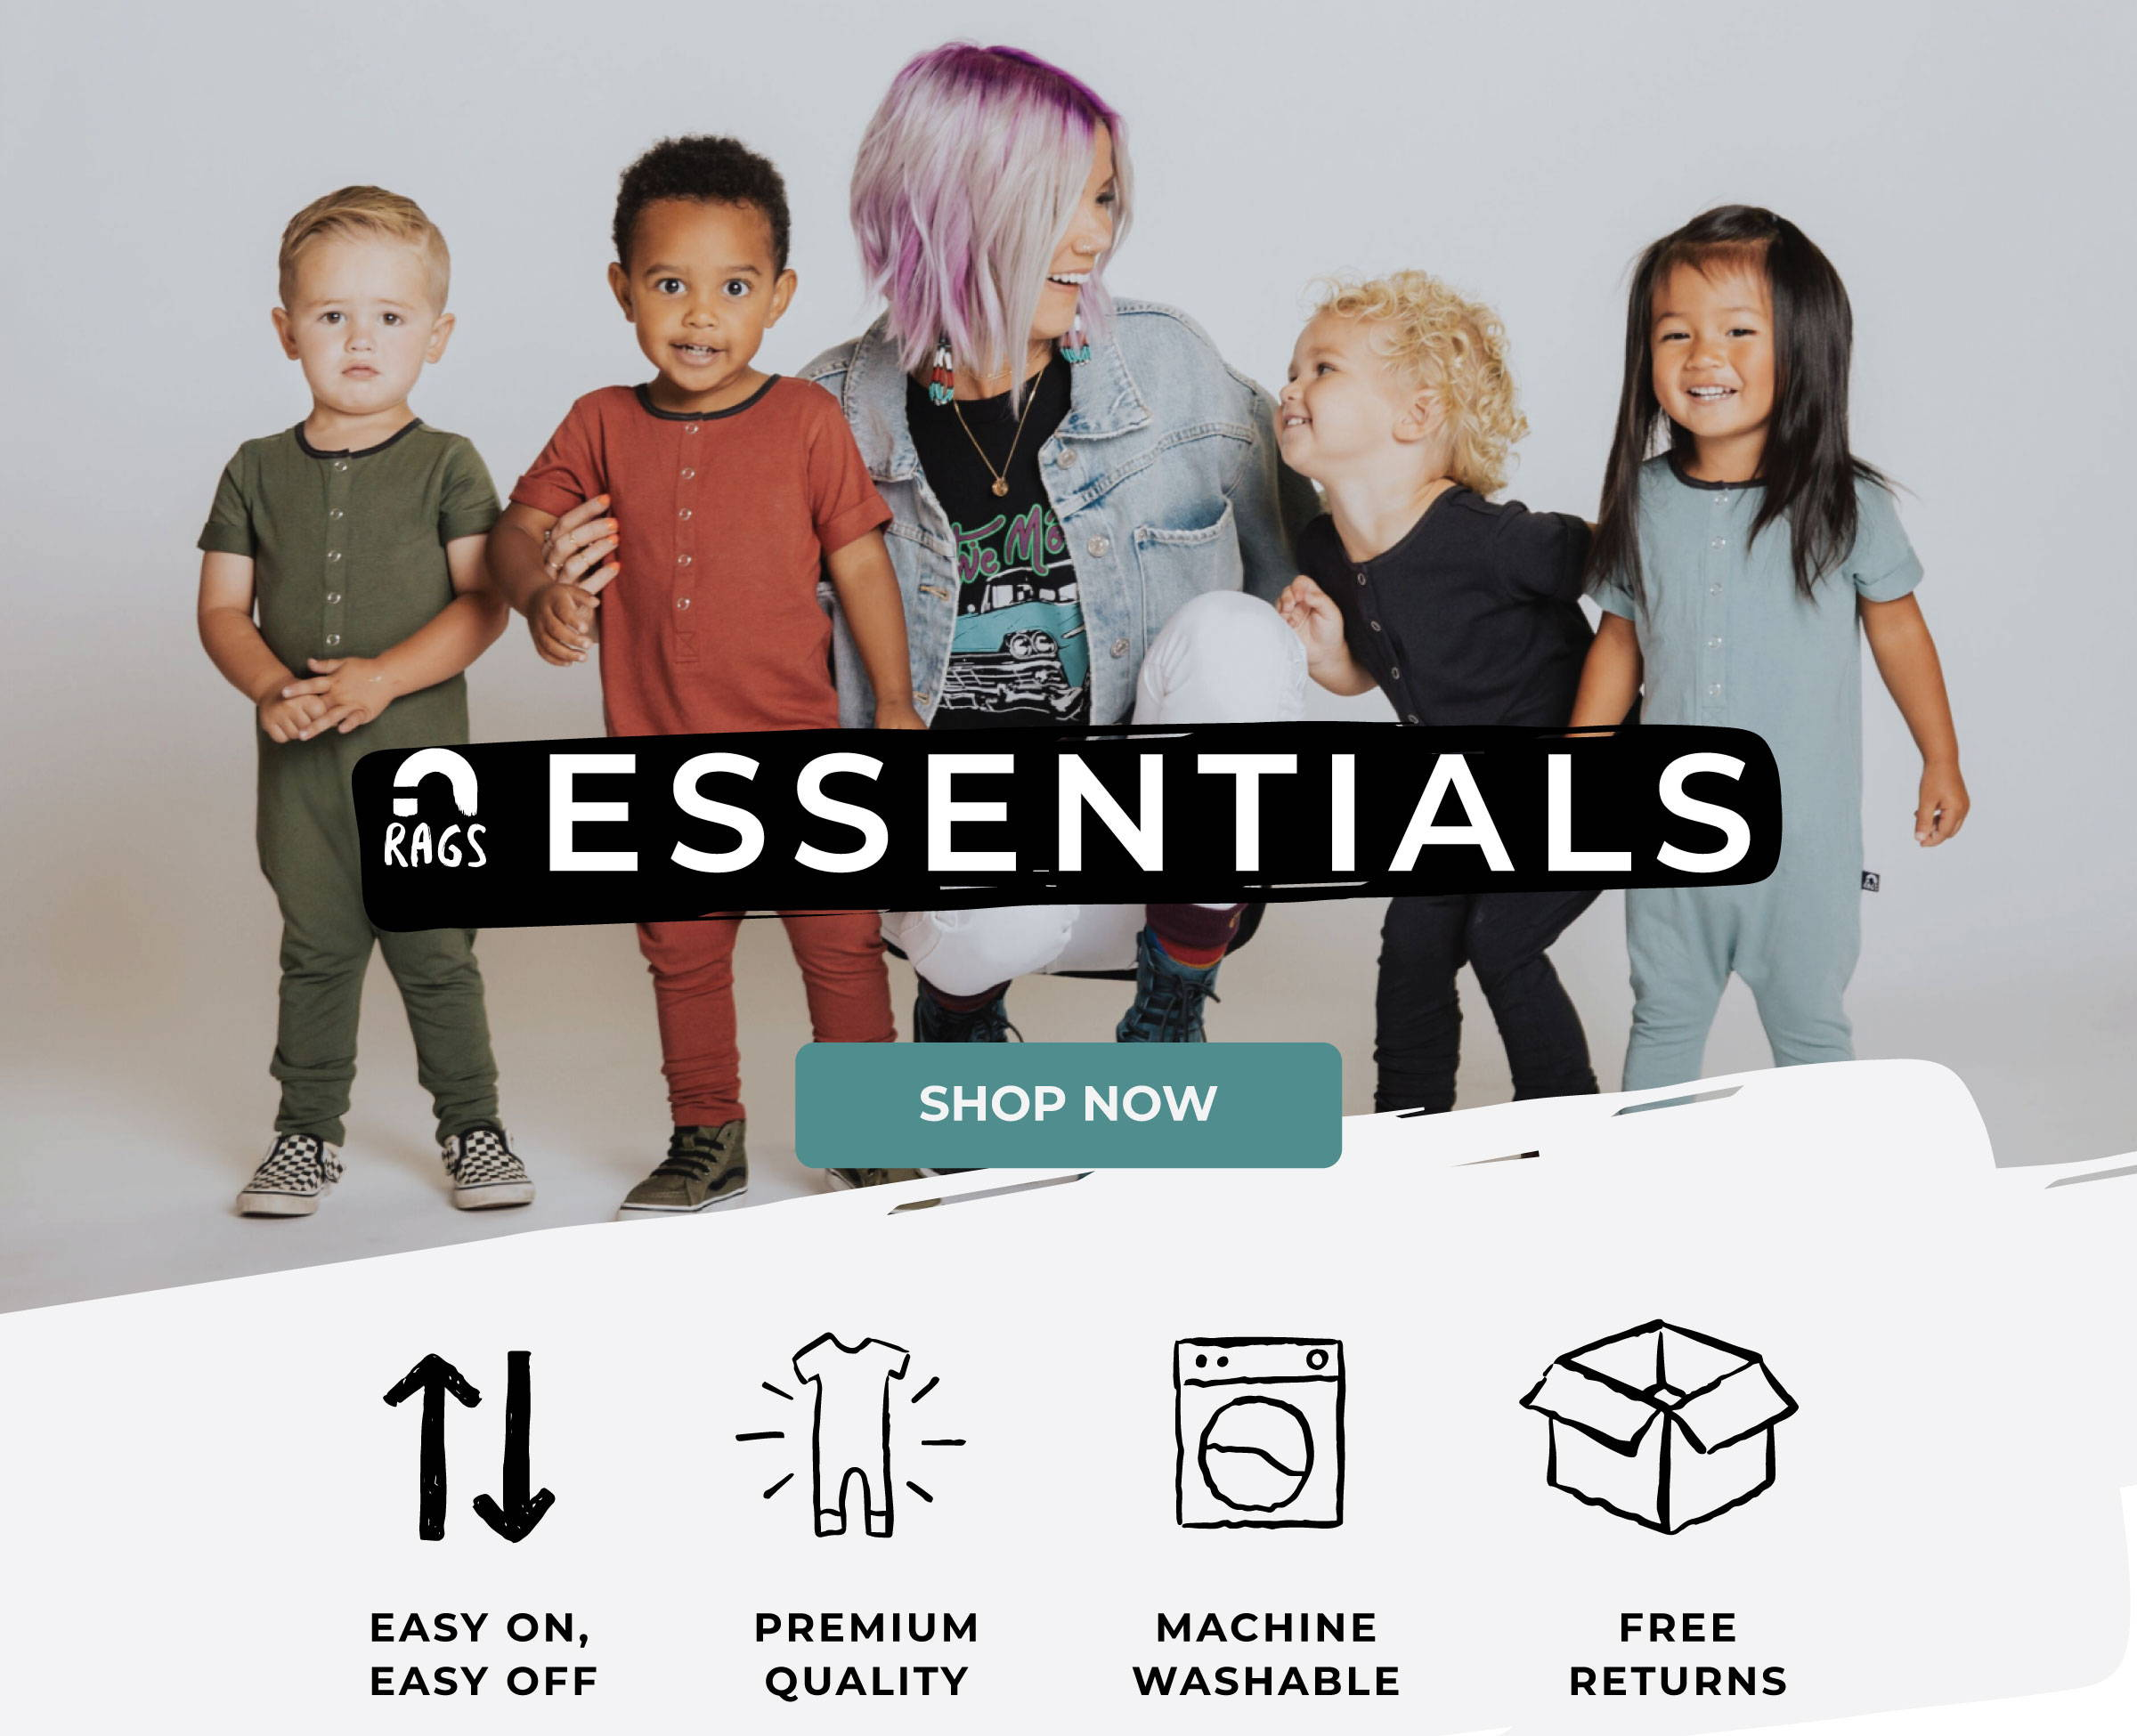 Essentials by RAGS: Easy On, Easy Off. Premium Quality. Machine Washable. Free Returns.